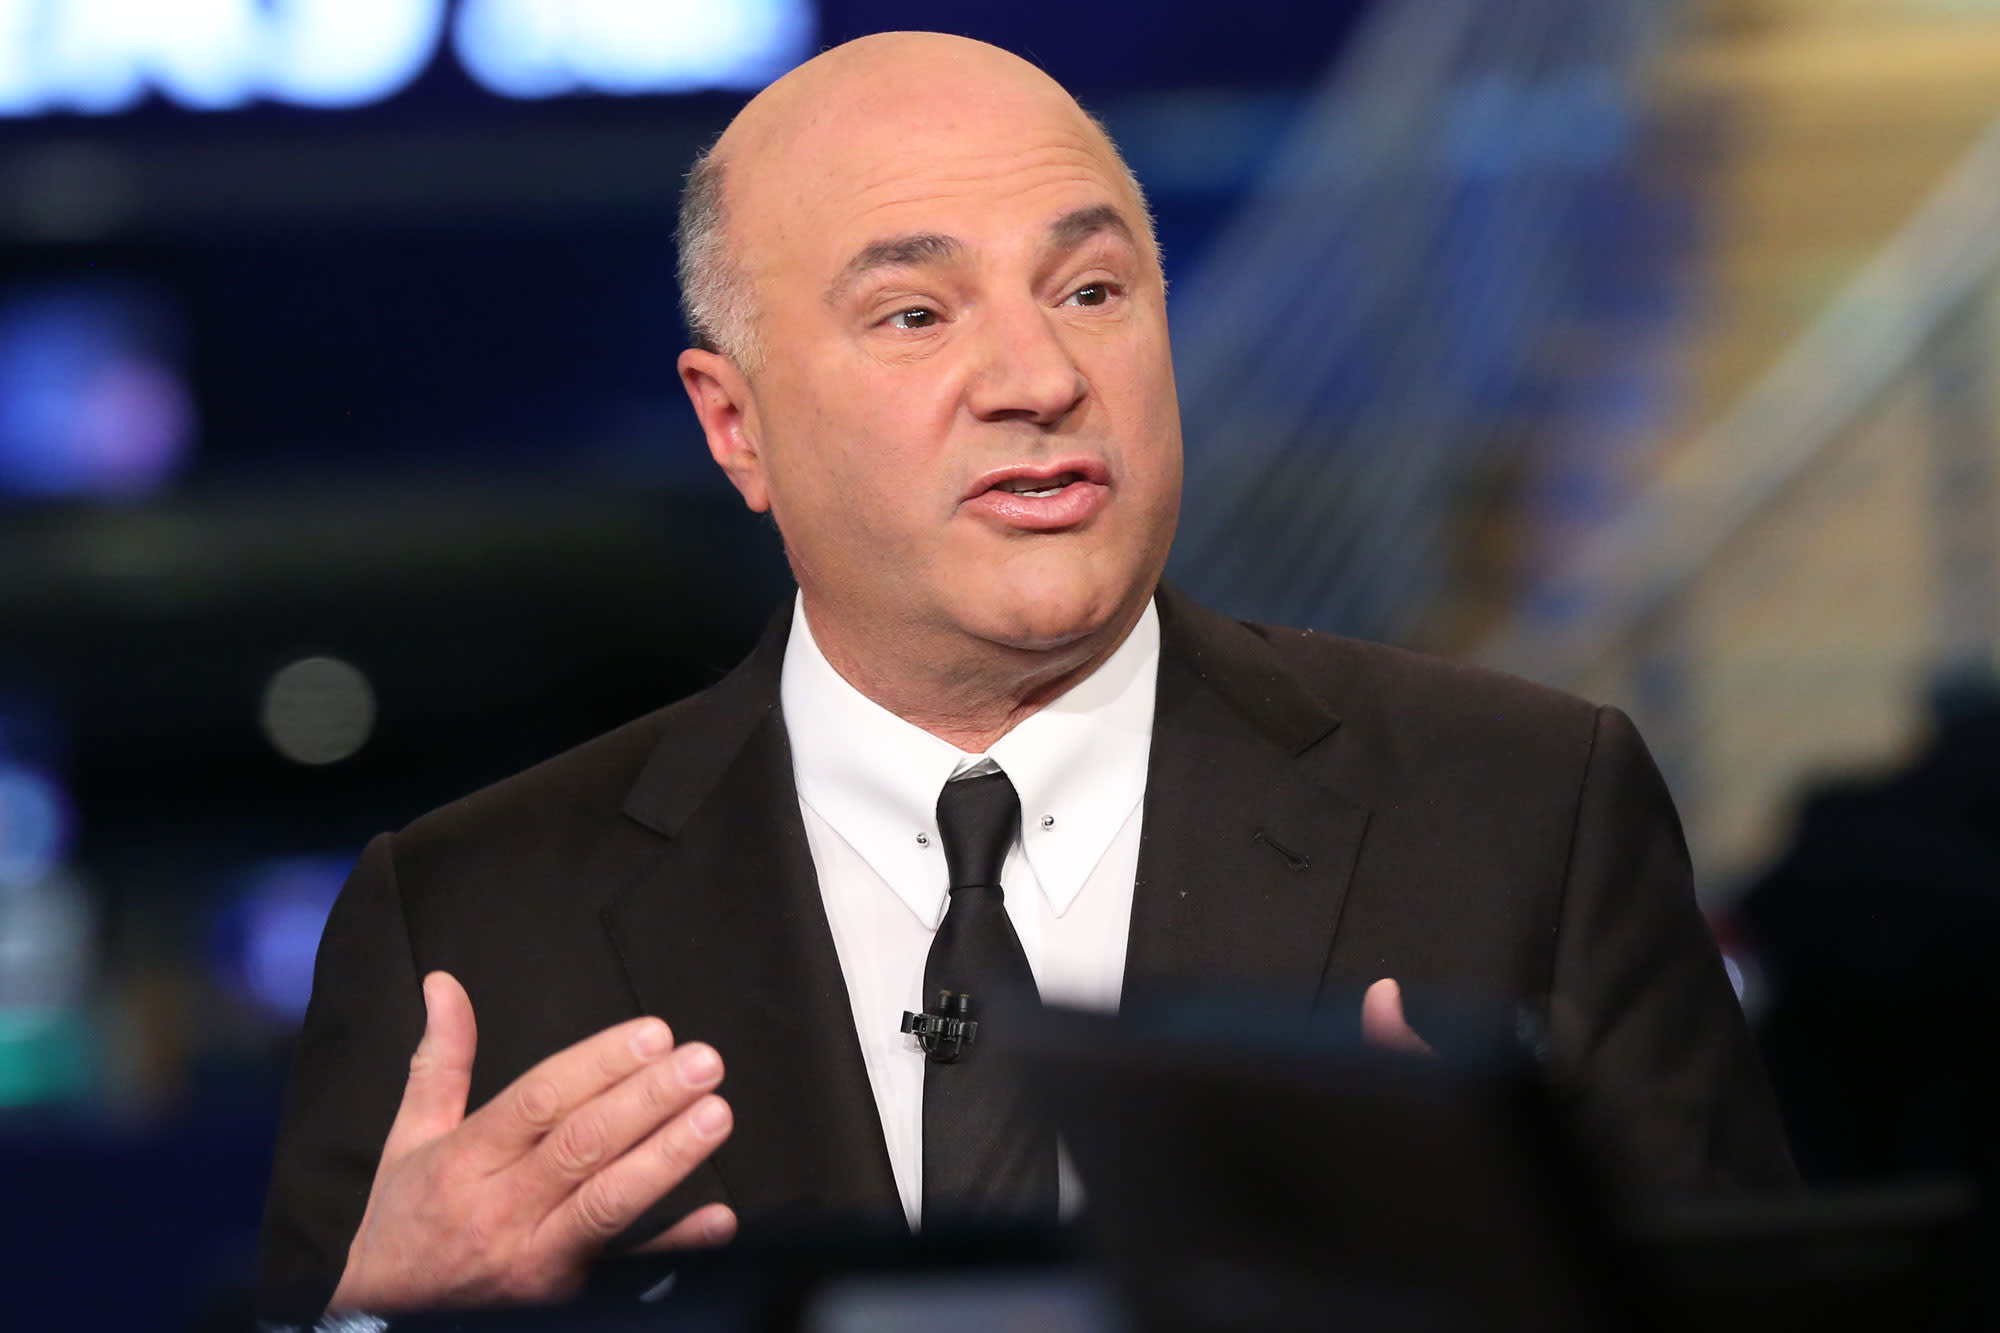 Shark Tank's' Kevin O'Leary: Don't buy a car, do this instead